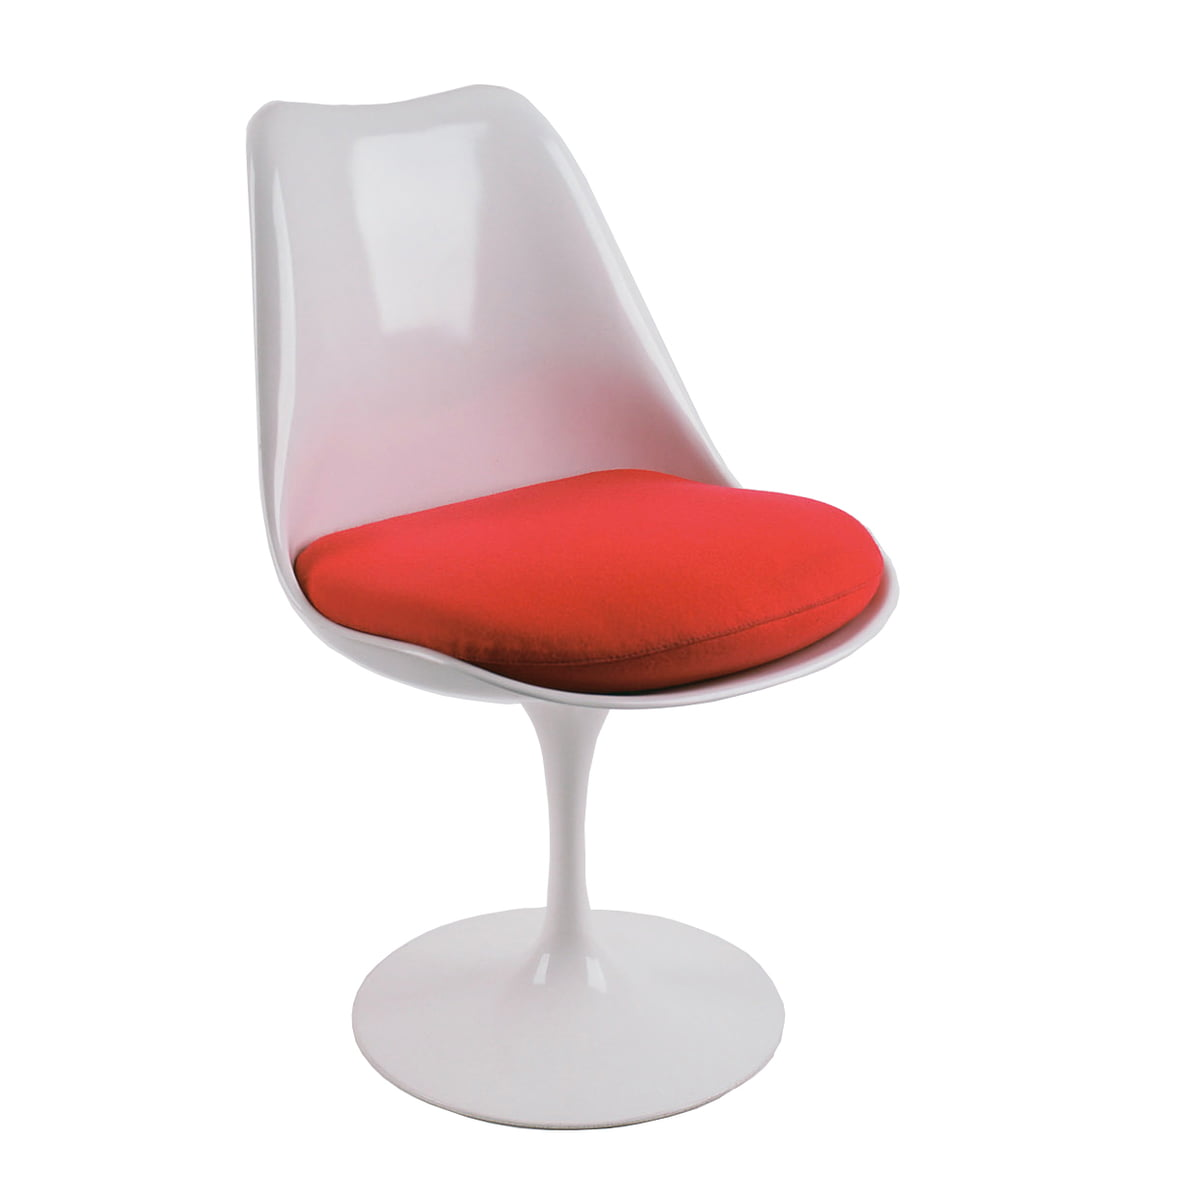 Knoll Saarinen Tulip Chair